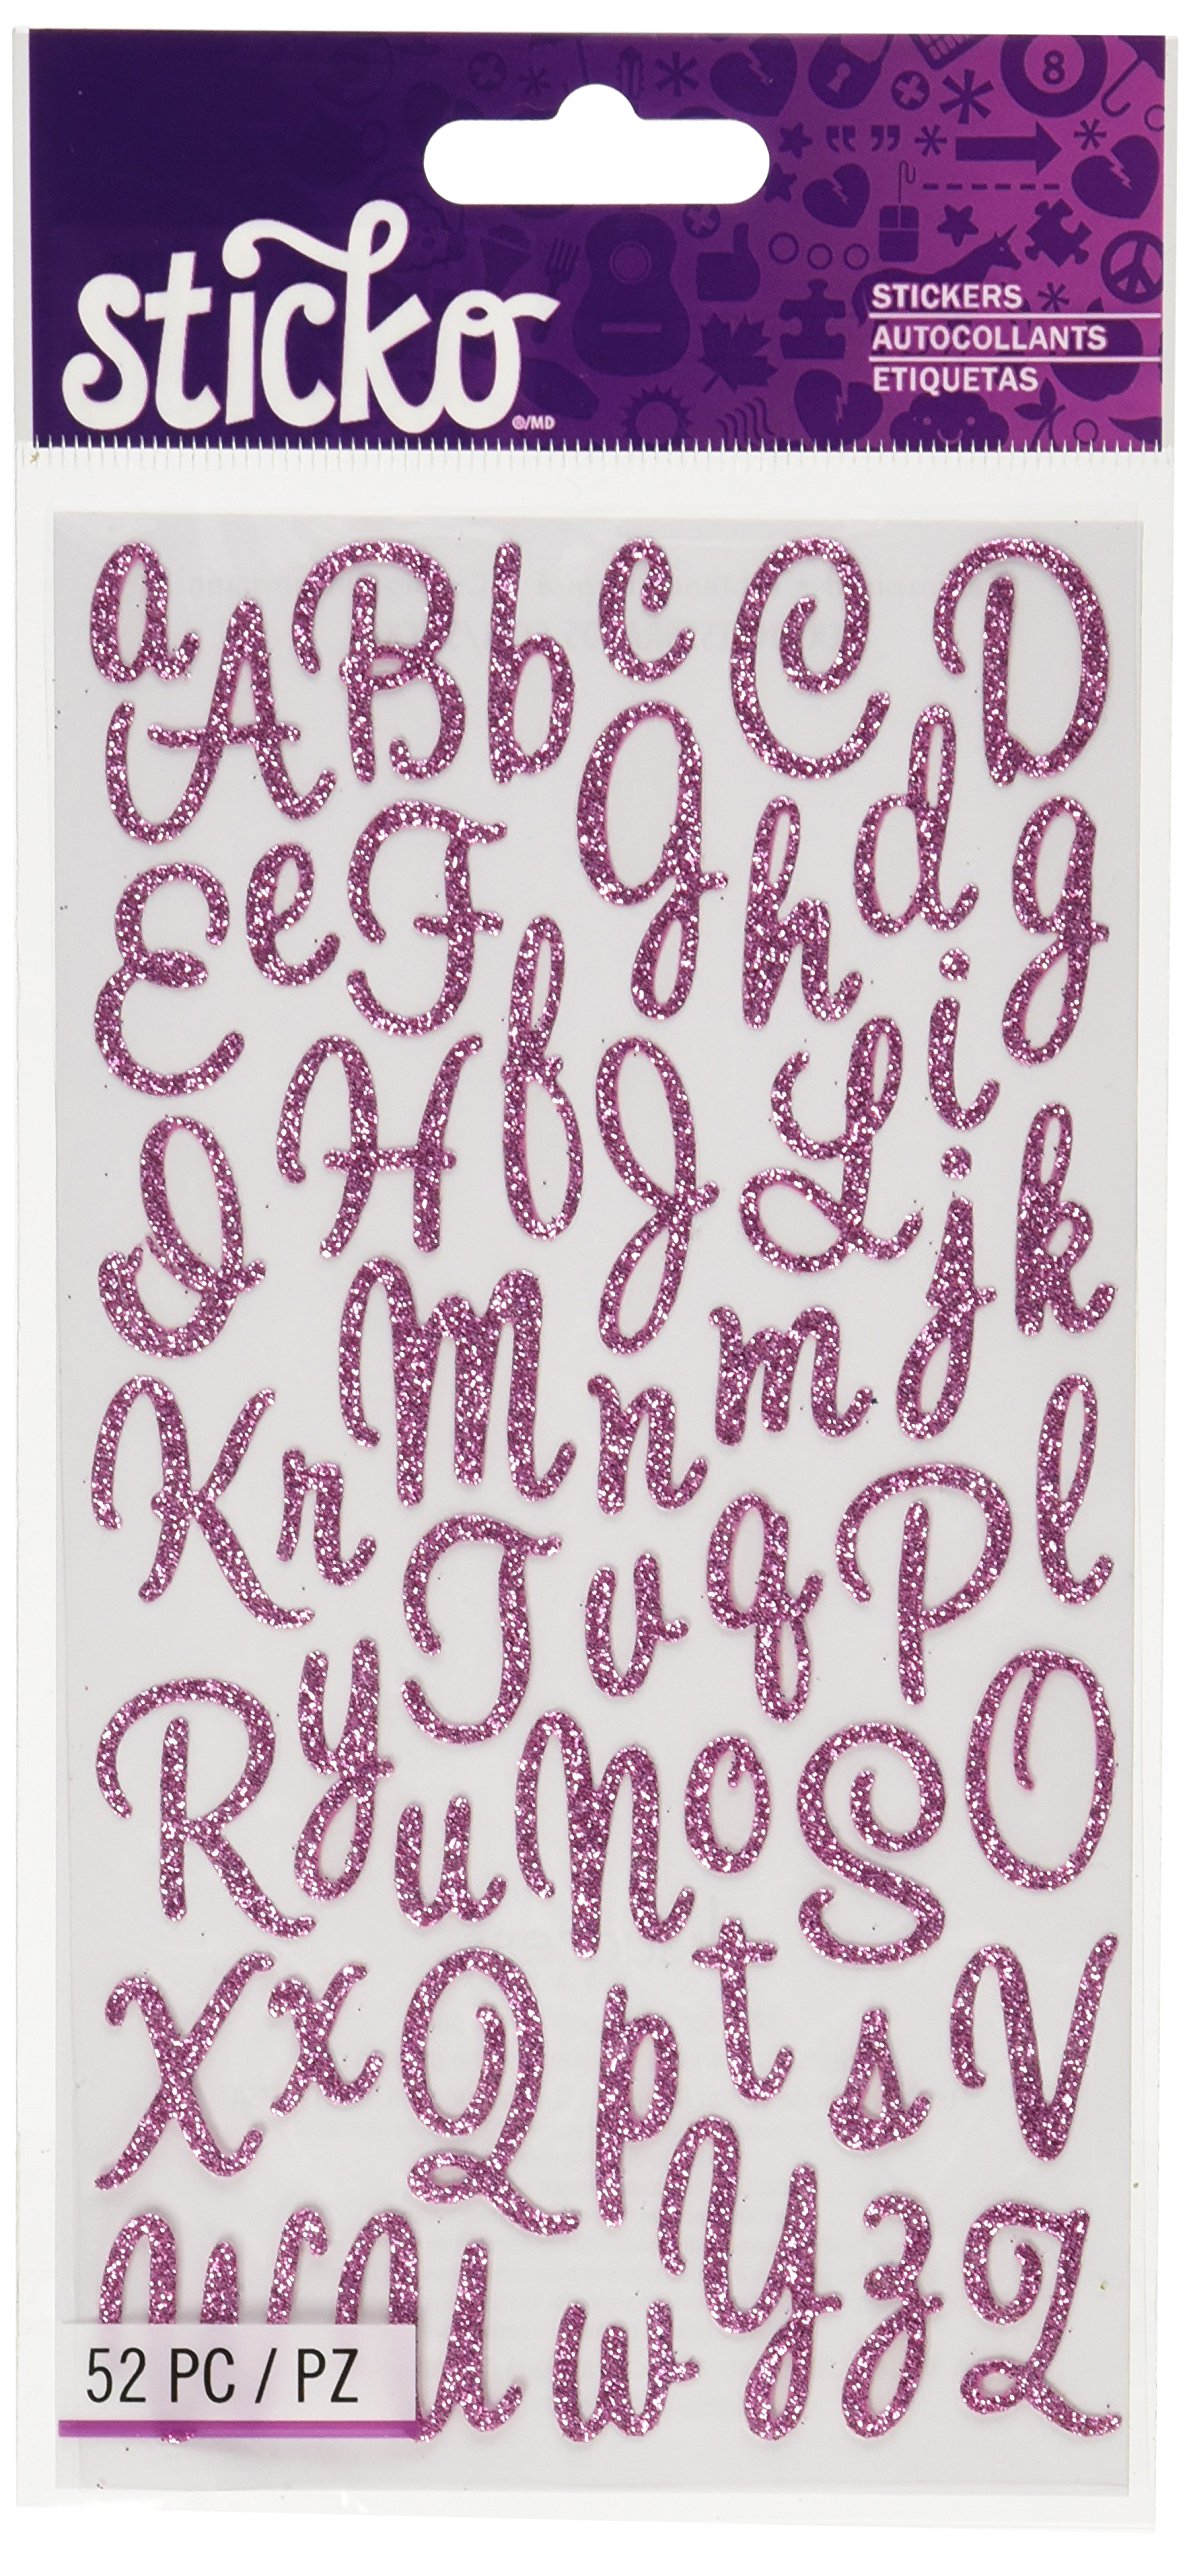 Sticko Sweetheart Pink Script Alphabet Sticker by Sticko (Image #1)